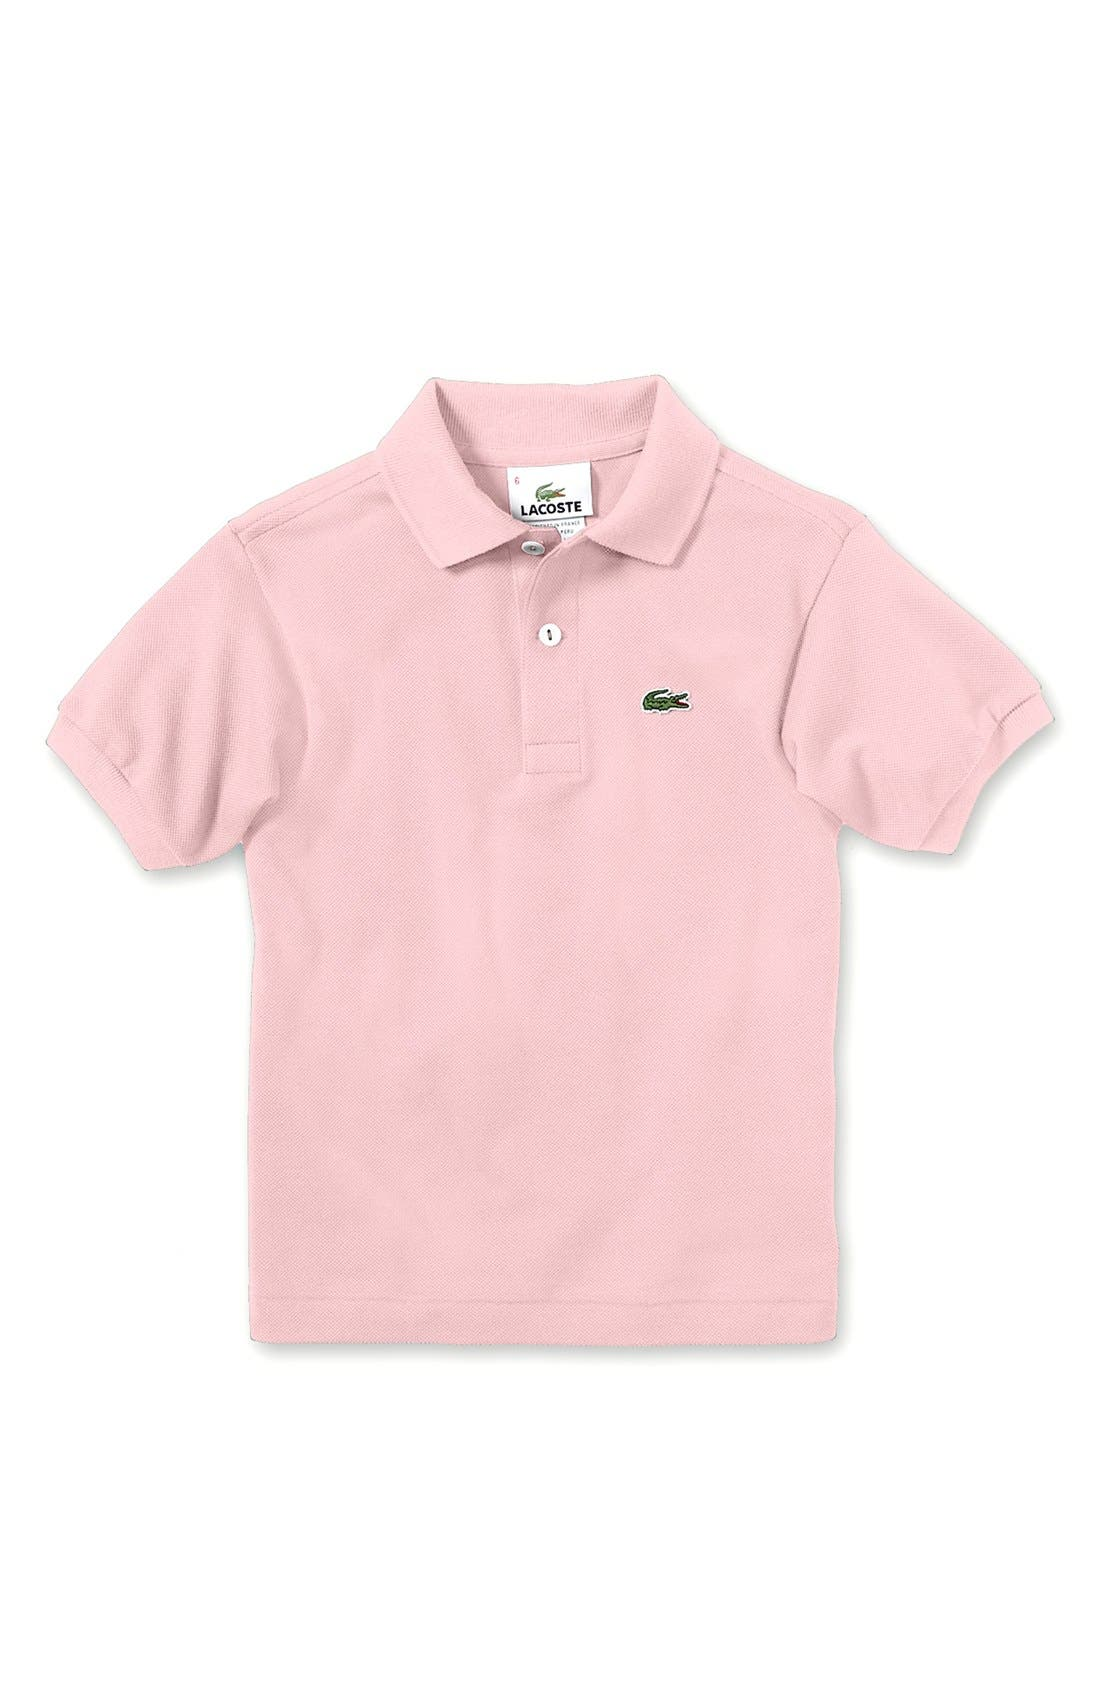 Main Image - Lacoste Short Sleeve Polo (Baby Boys)